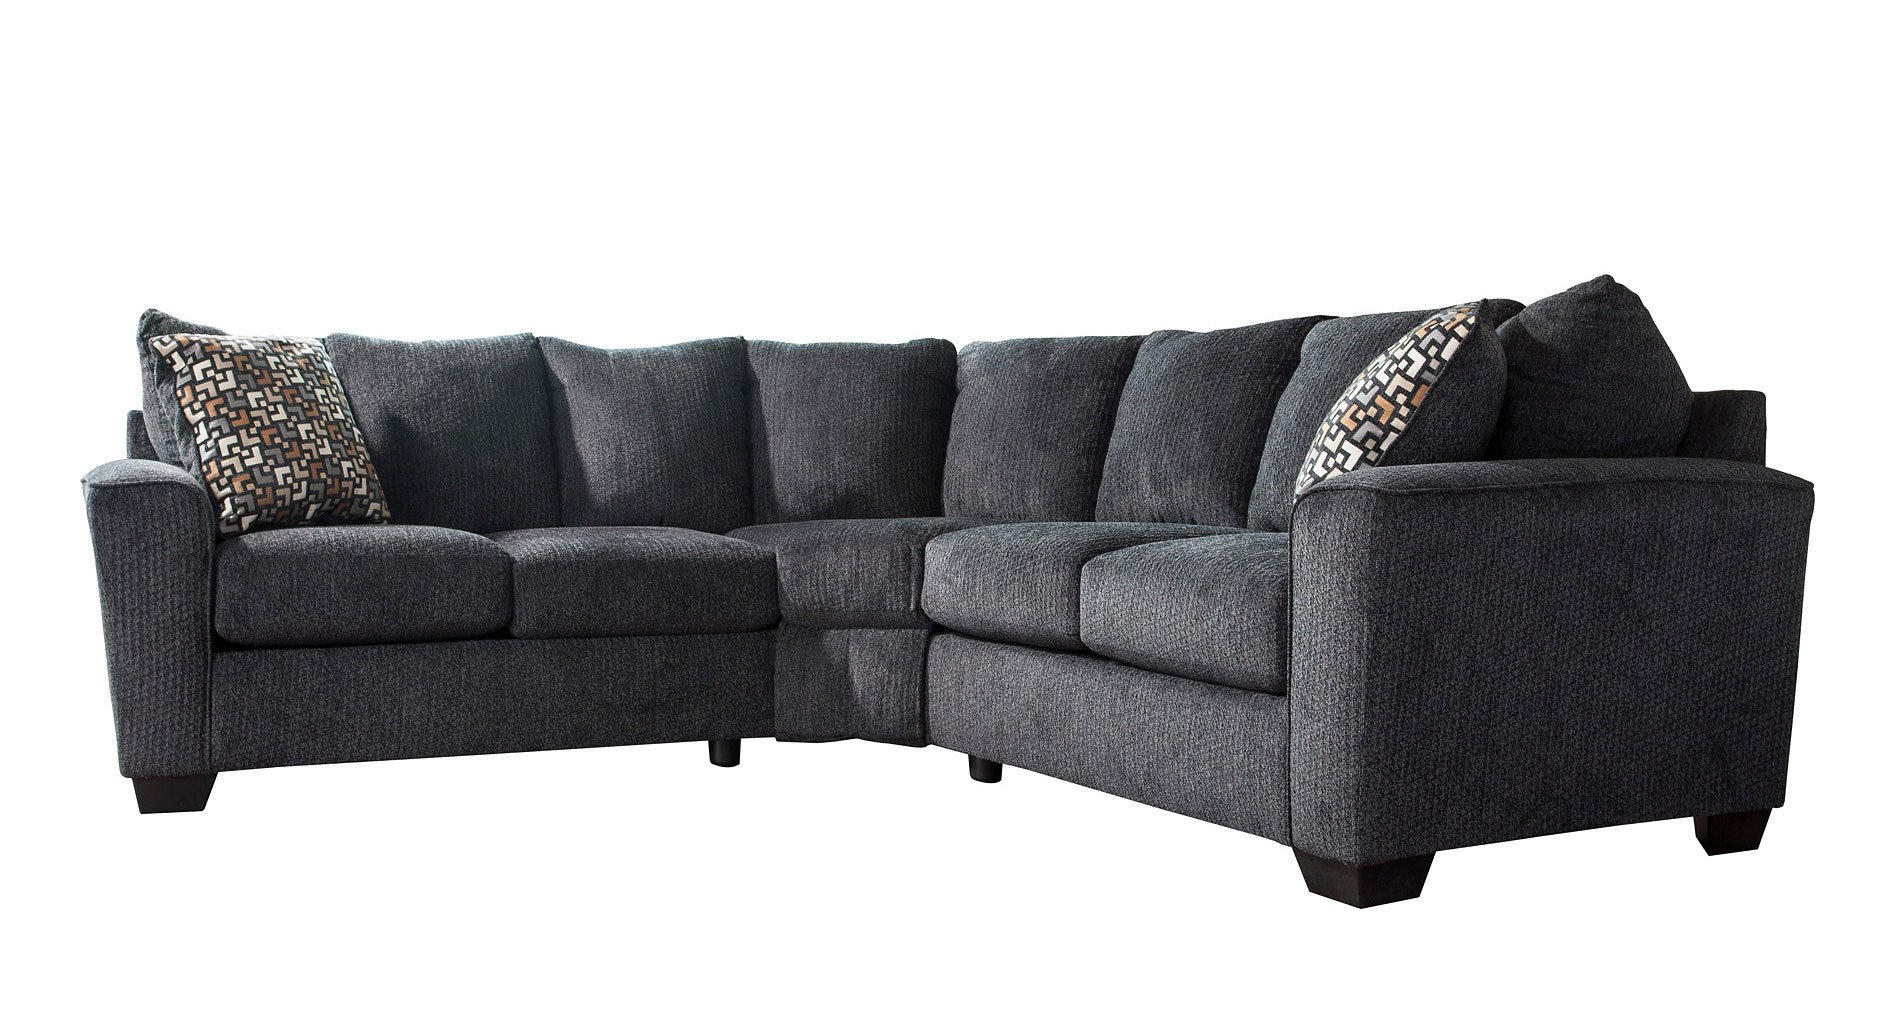 Sensational Wixon Slate Sectional Caraccident5 Cool Chair Designs And Ideas Caraccident5Info